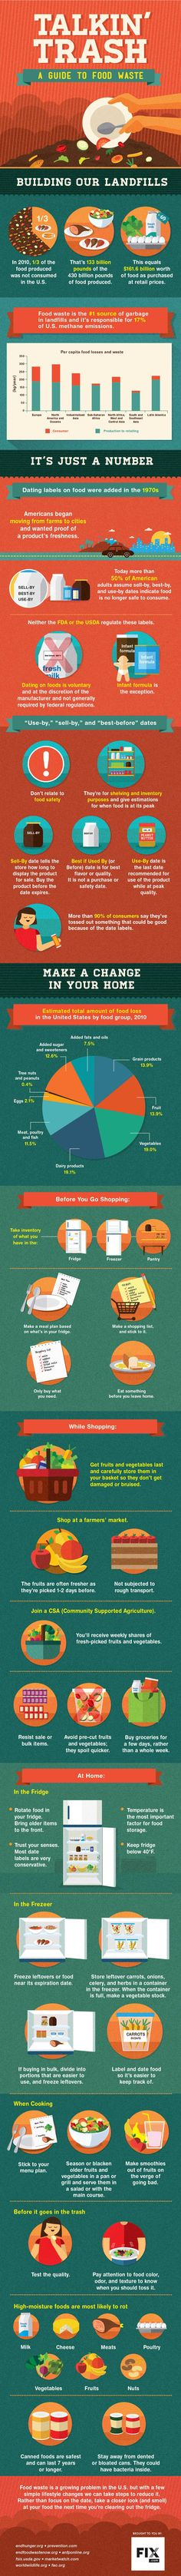 Food Waste Infographic. When should food be thrown out?